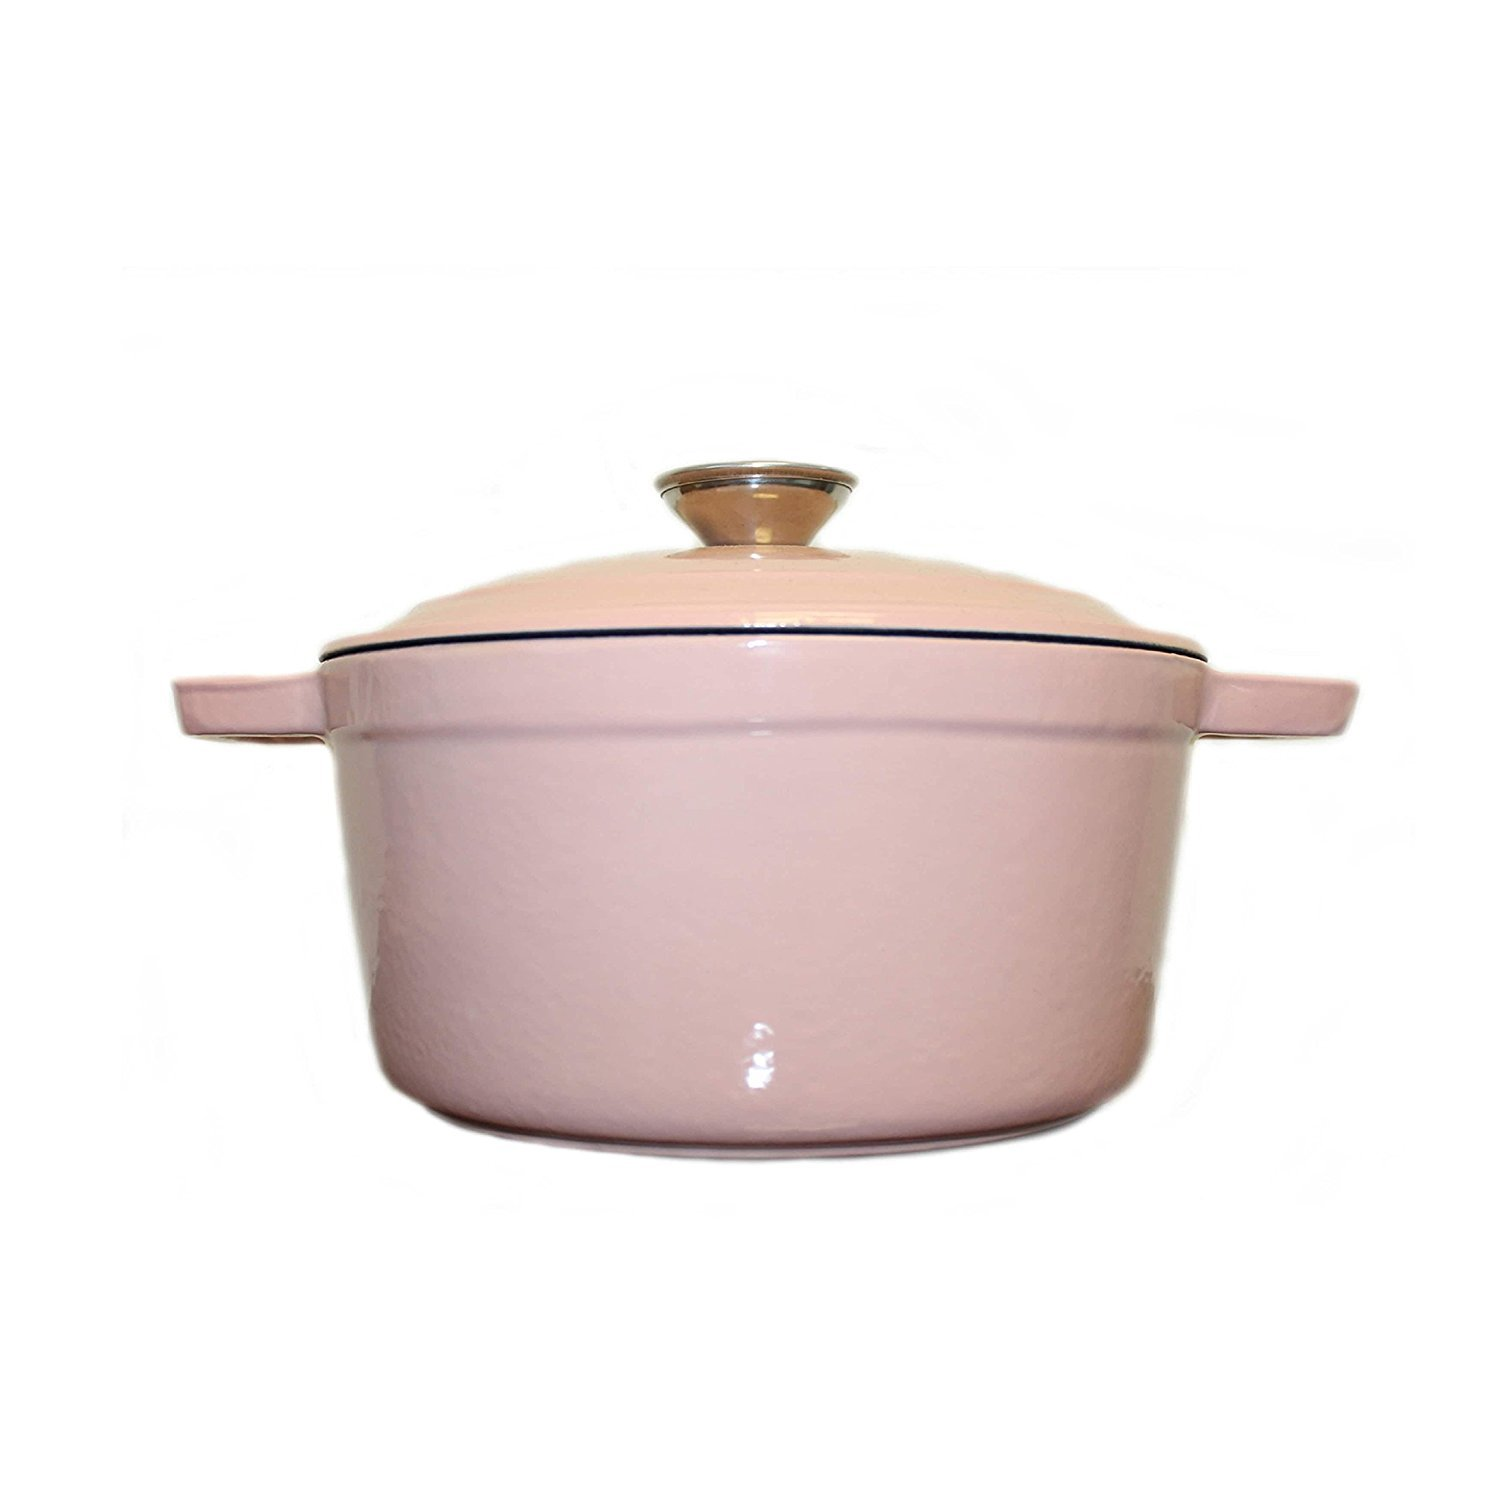 BergHOFF Neo Cast Iron Oval Covered Casserole Dish 5qt Cookware - Pink